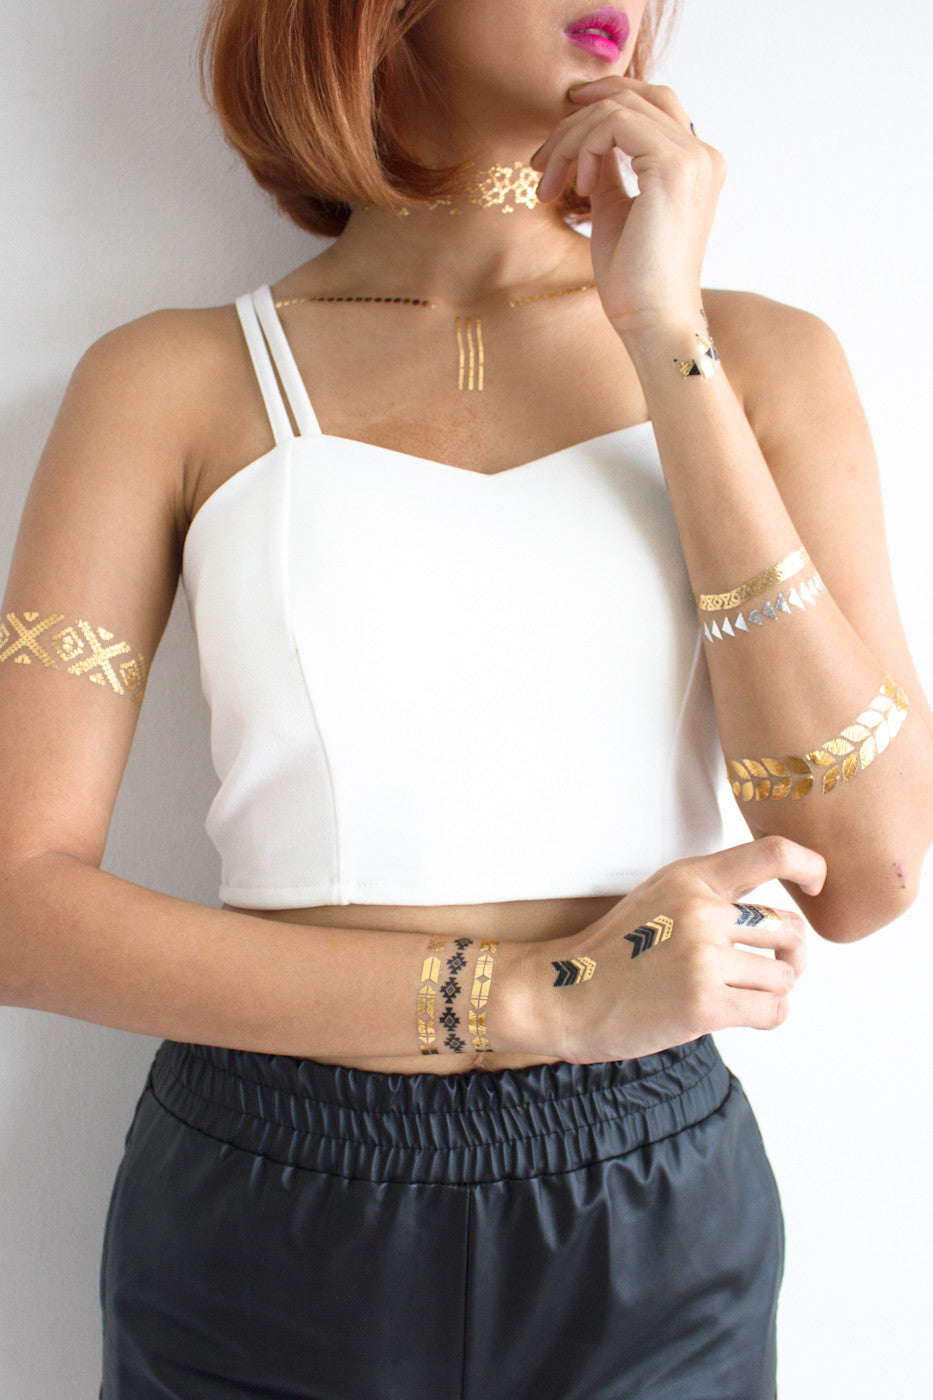 Metallic Temporary Tattoos -  - Peep Boutique - www.peepb.com - 5